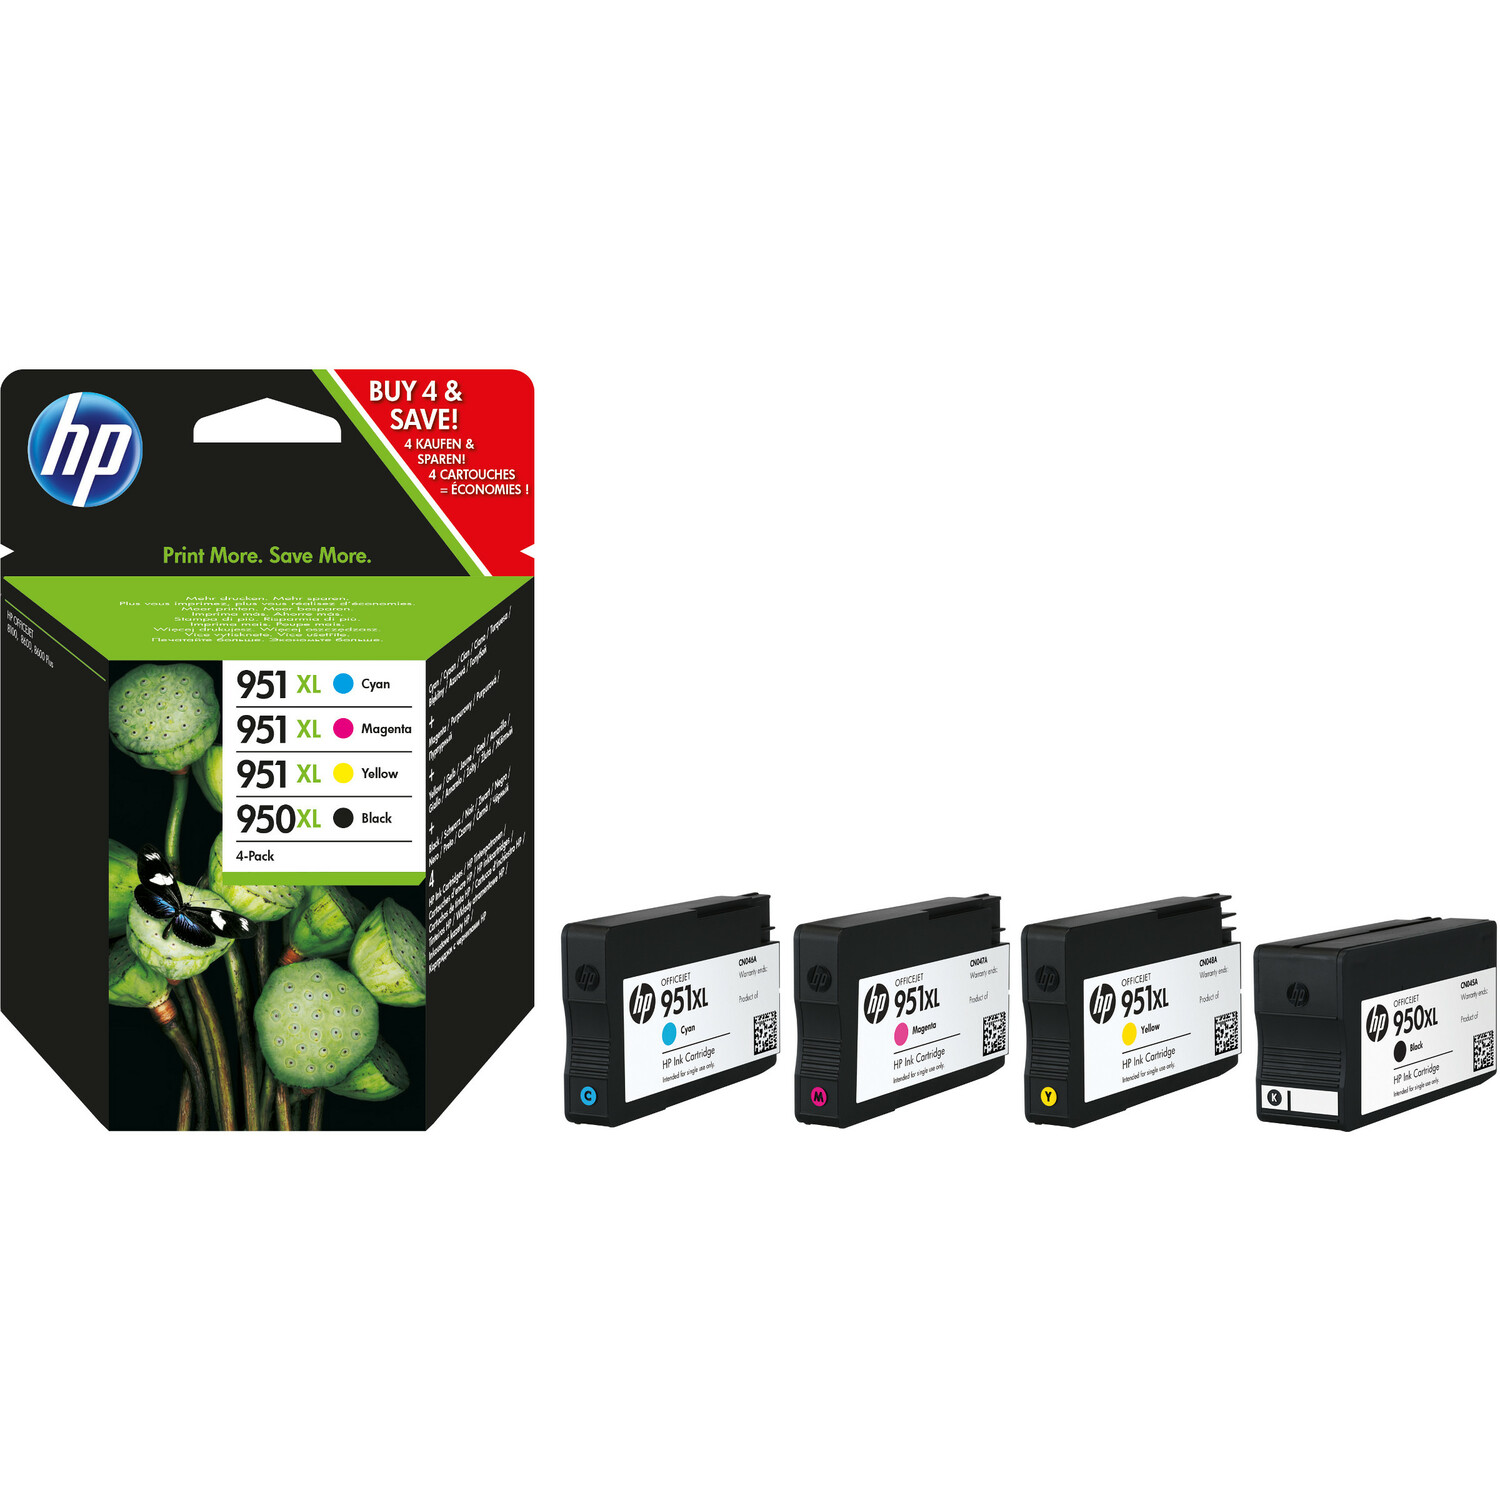 HP 950XL/951XL Ink Cartridge - Black, Cyan, Magenta, Yellow